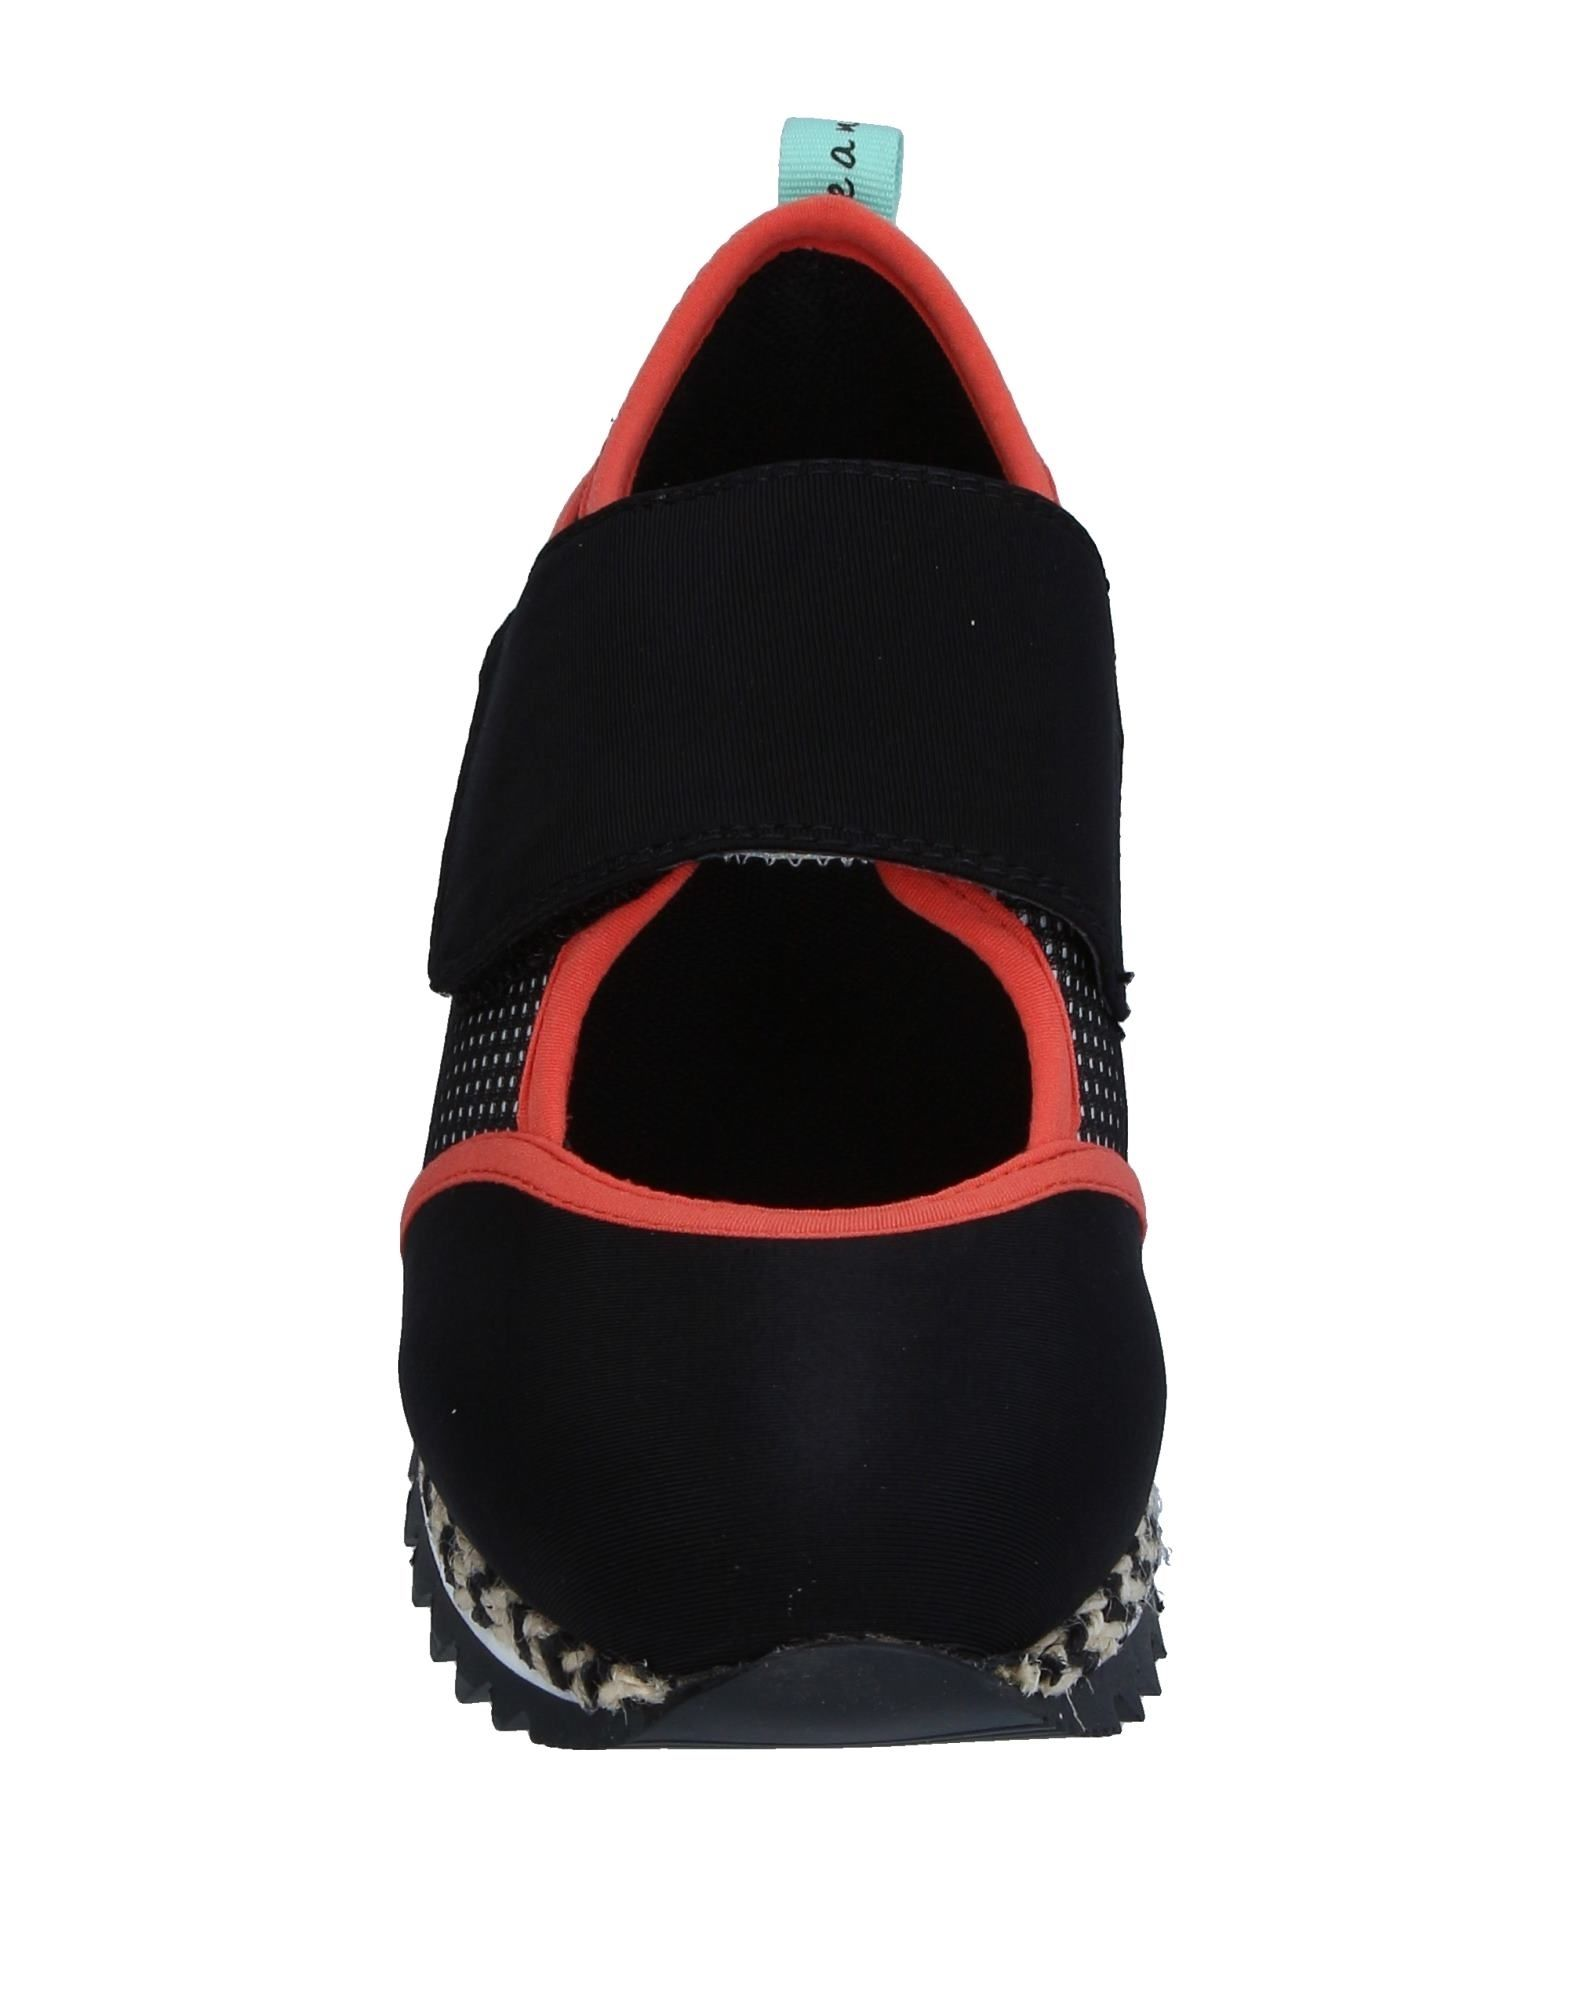 Gioseppo Gioseppo Gioseppo Sneakers - Women Gioseppo Sneakers online on  Canada - 11336293HG a4589b